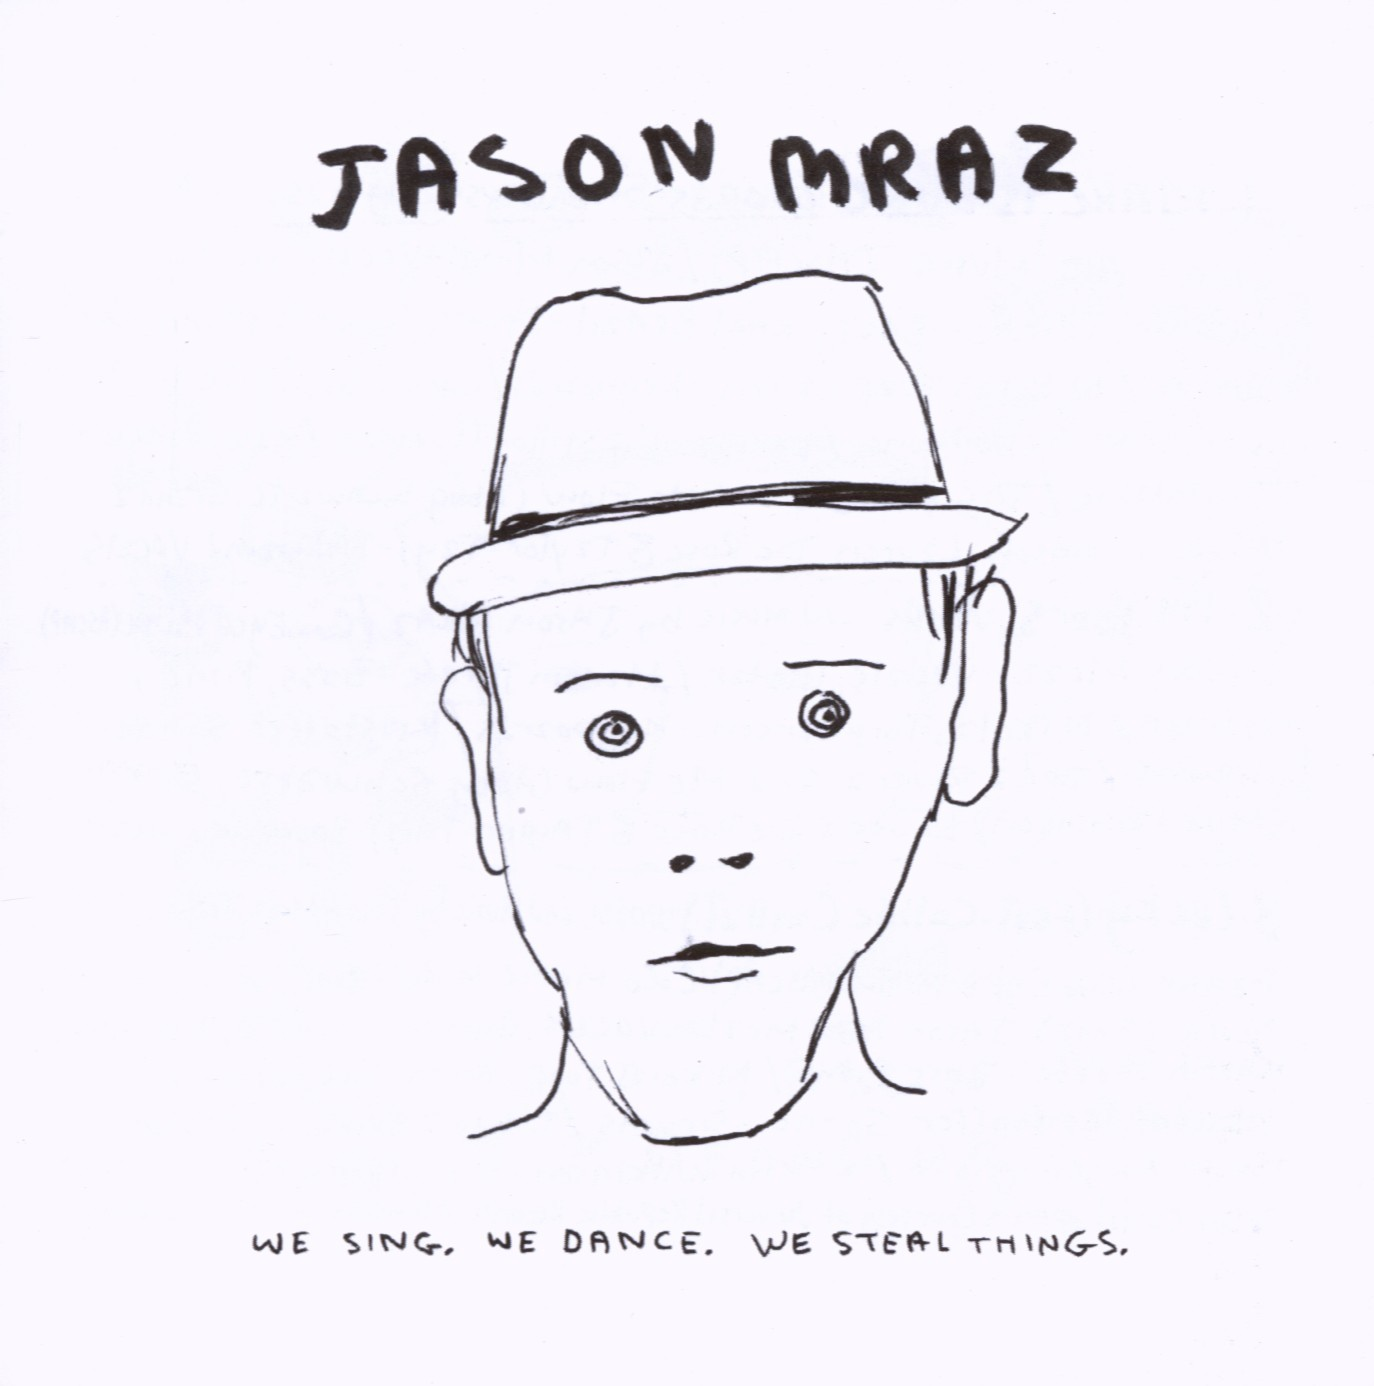 Cover: I'm yours, Jason Mraz